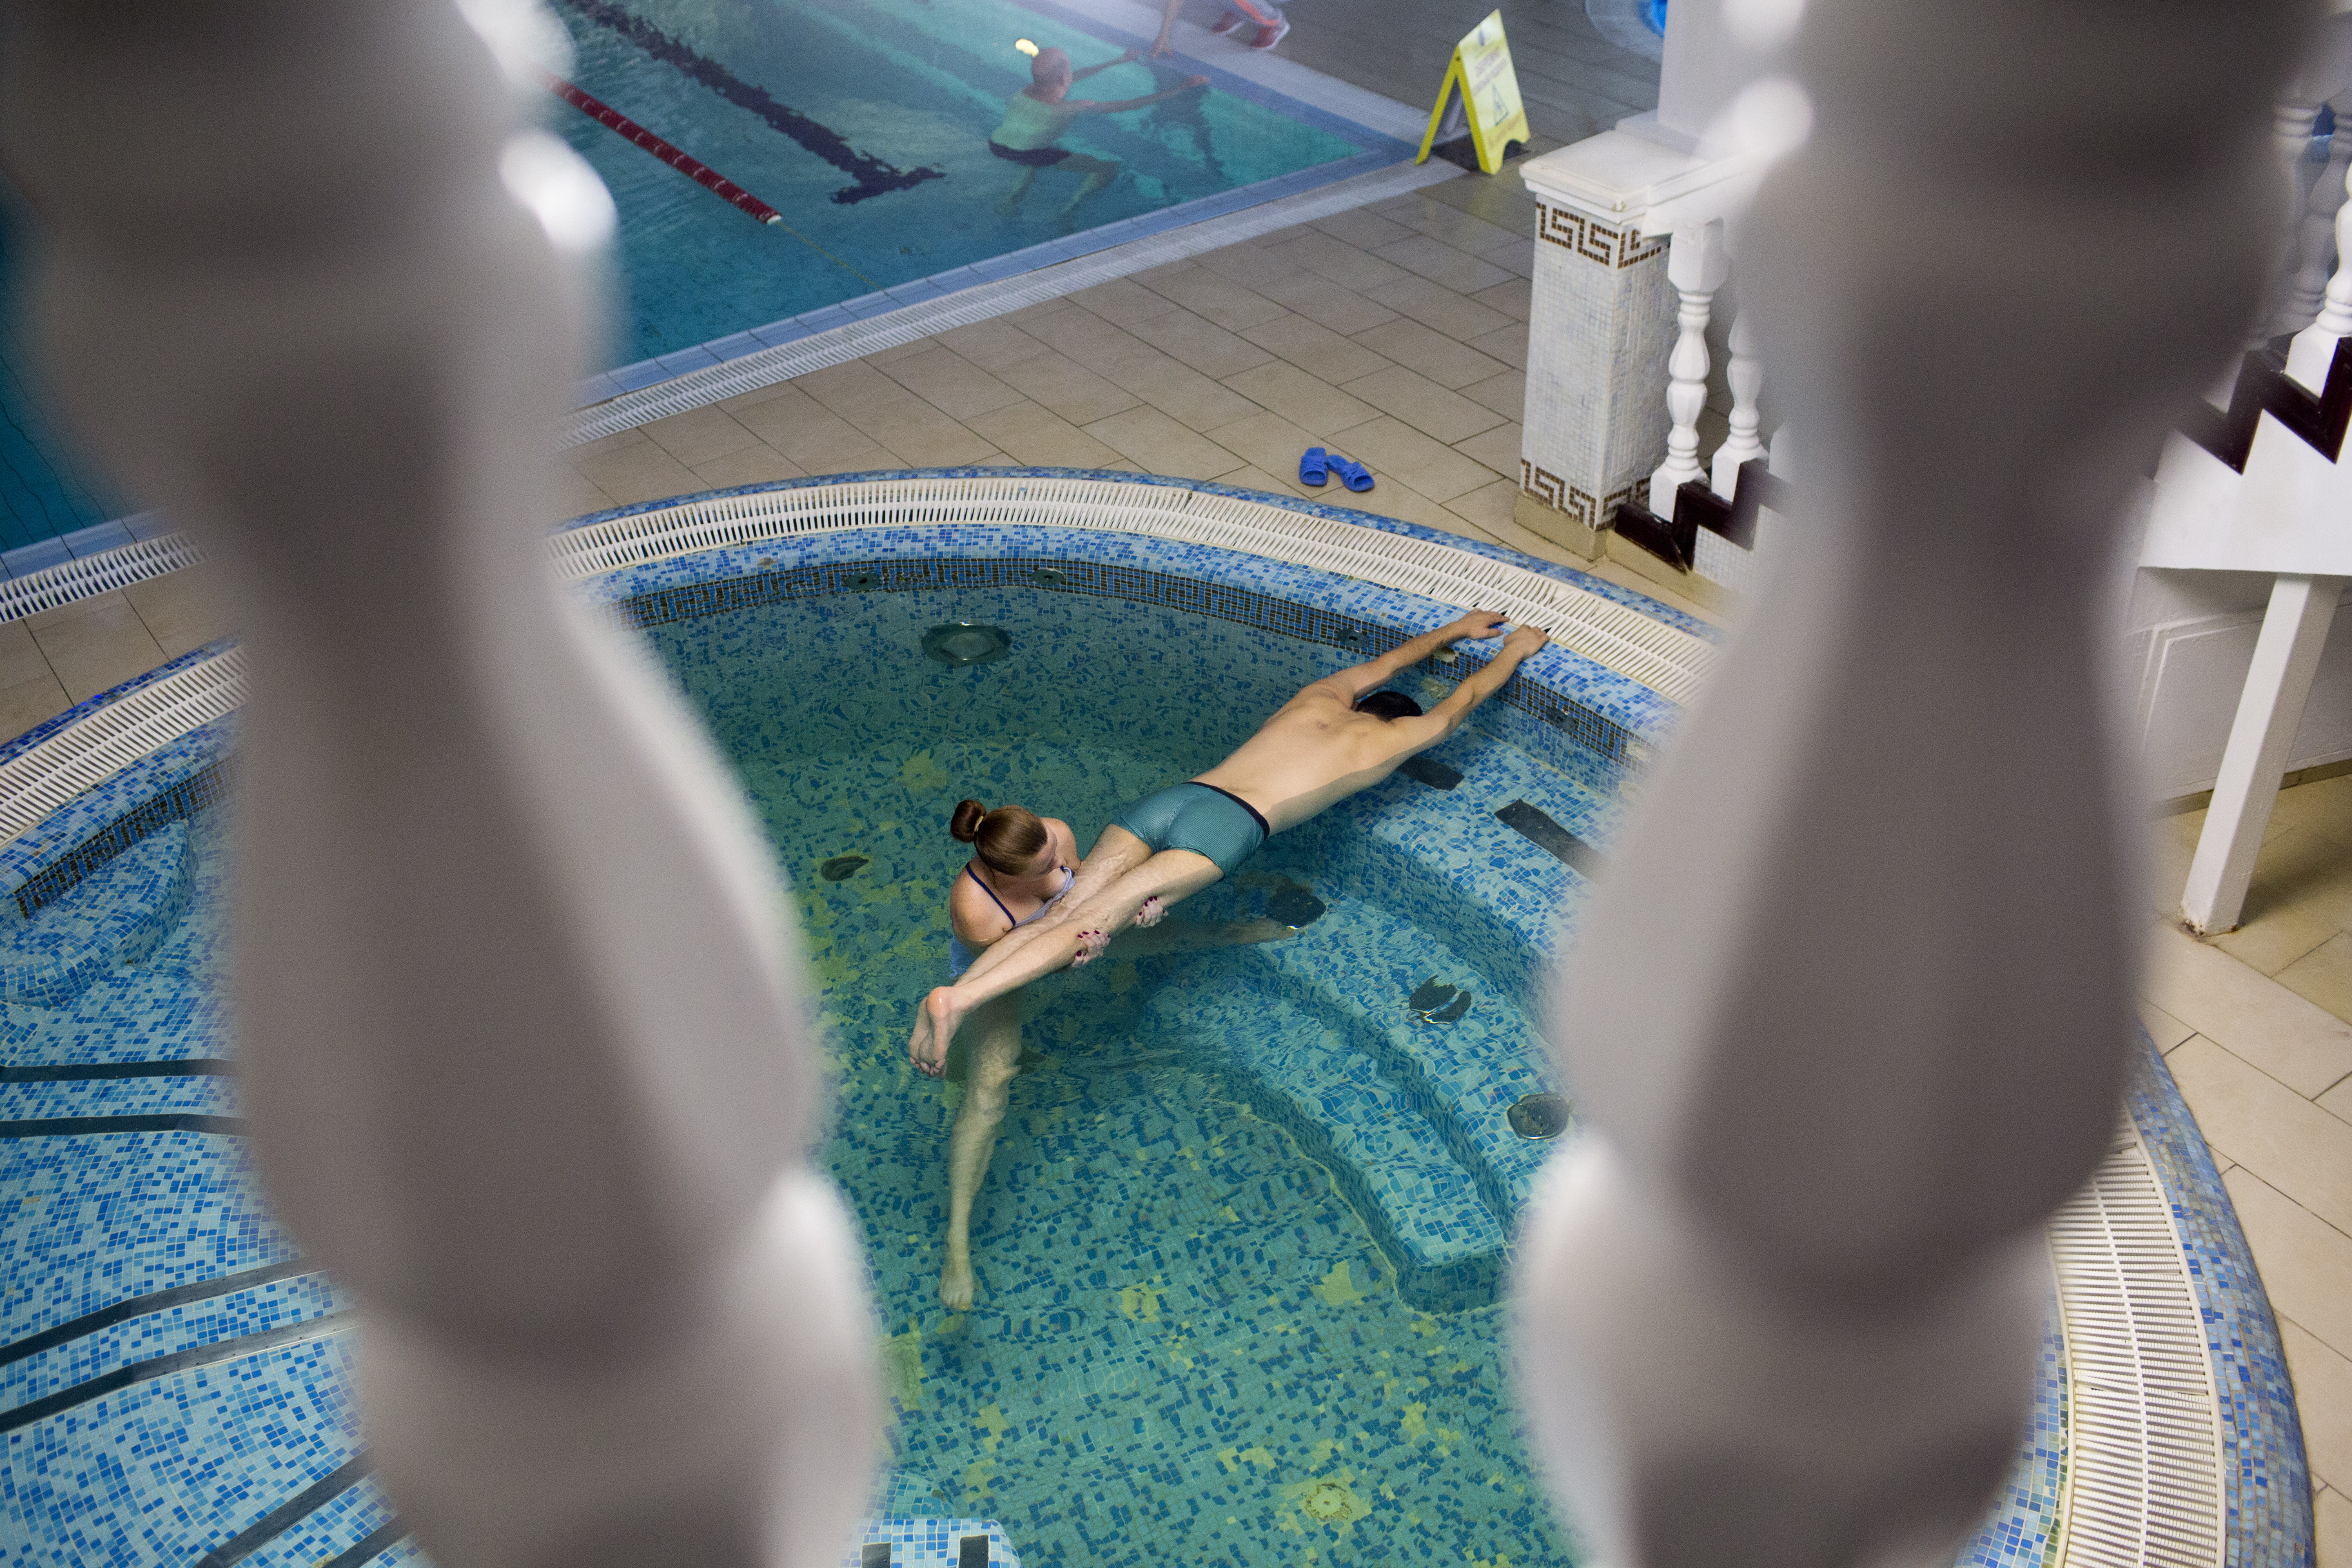 """Artem Zapototsky, 34, undergoes physical therapy in a pool in Truskavets, Ukraine, Sept. 6, 2014. The married father of two was severely wounded during the Euromaidan revolution on Feb. 20, 2014, when he was shot in the back as he stood unarmed on the footbridge that crosses above Instytutska Street. The bullet damaged his spine before embedding near his left shoulder blade, where it remains today. Zapototsky is a lawyer from Lutsk, in the country's northwest; he aspires to regain the use of his legs and trains for approximately six hours a day while continuing his legal work. """"I am just very thankful that I already have children,"""" he said. """"I cannot imagine myself not walking again."""""""